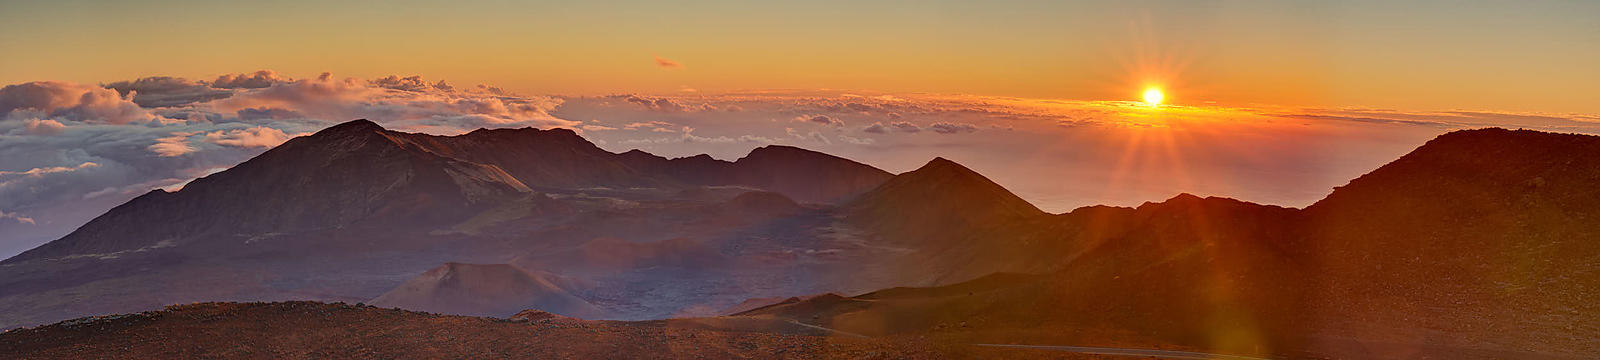 Haleakala Sunrise Panorama